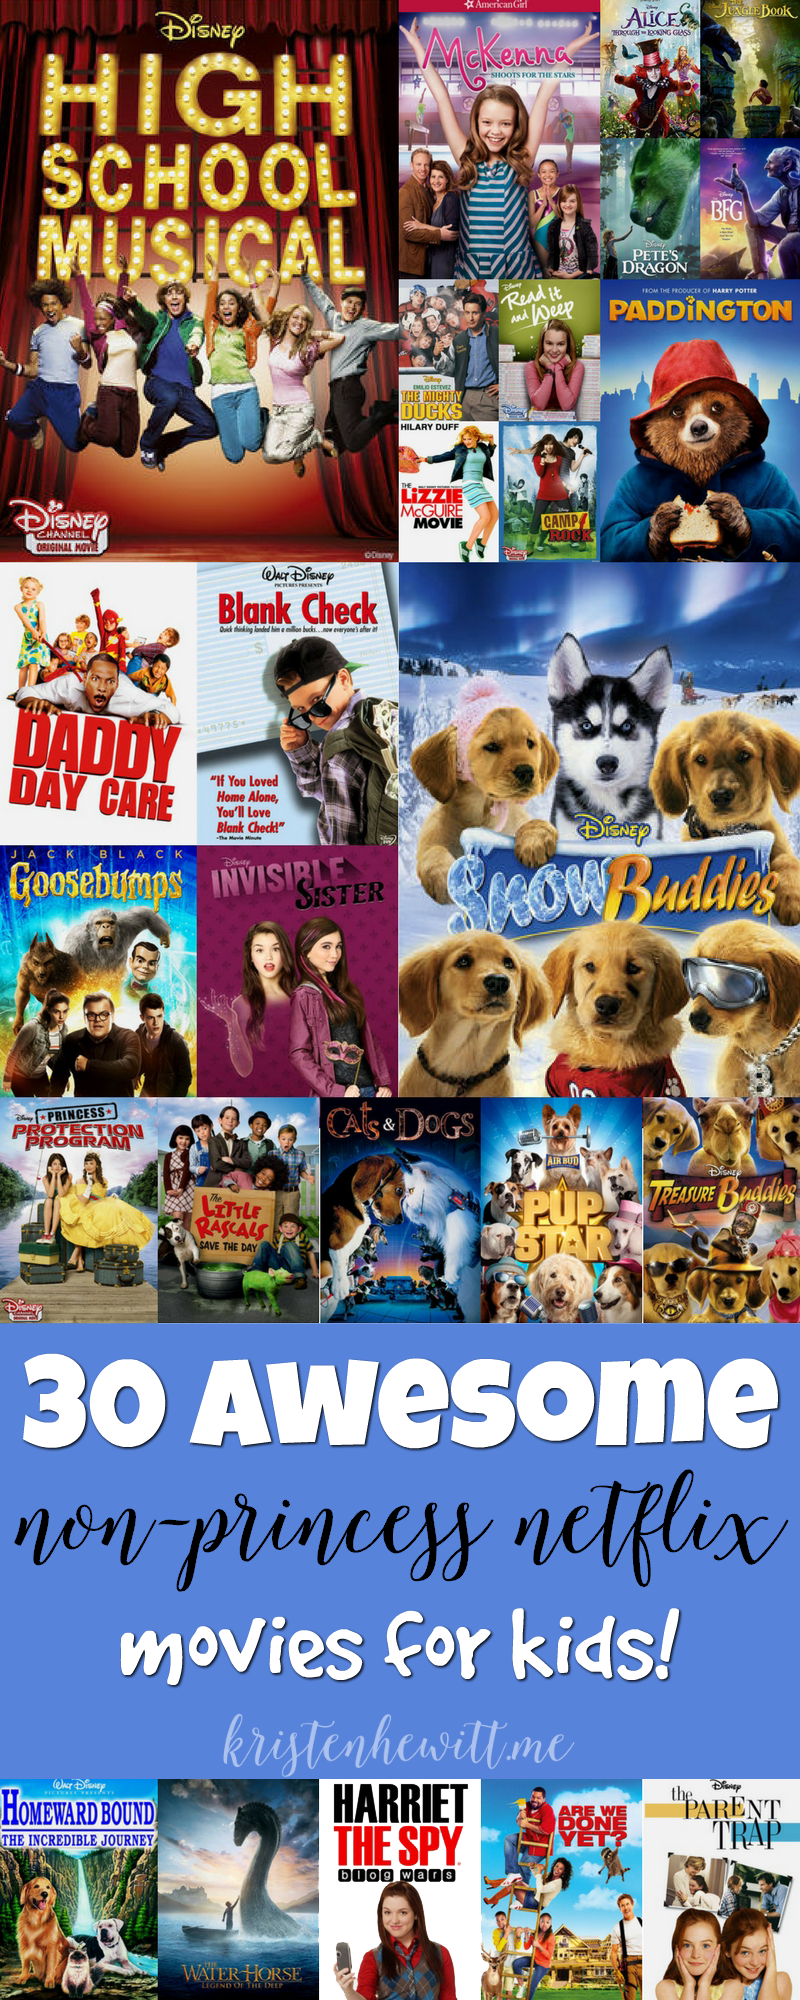 Looking for a non-princess movie for your kids on Netflix? Then check out this amazing list of 30 awesome non-princess netflix movies for kids. You won't be disappointed!